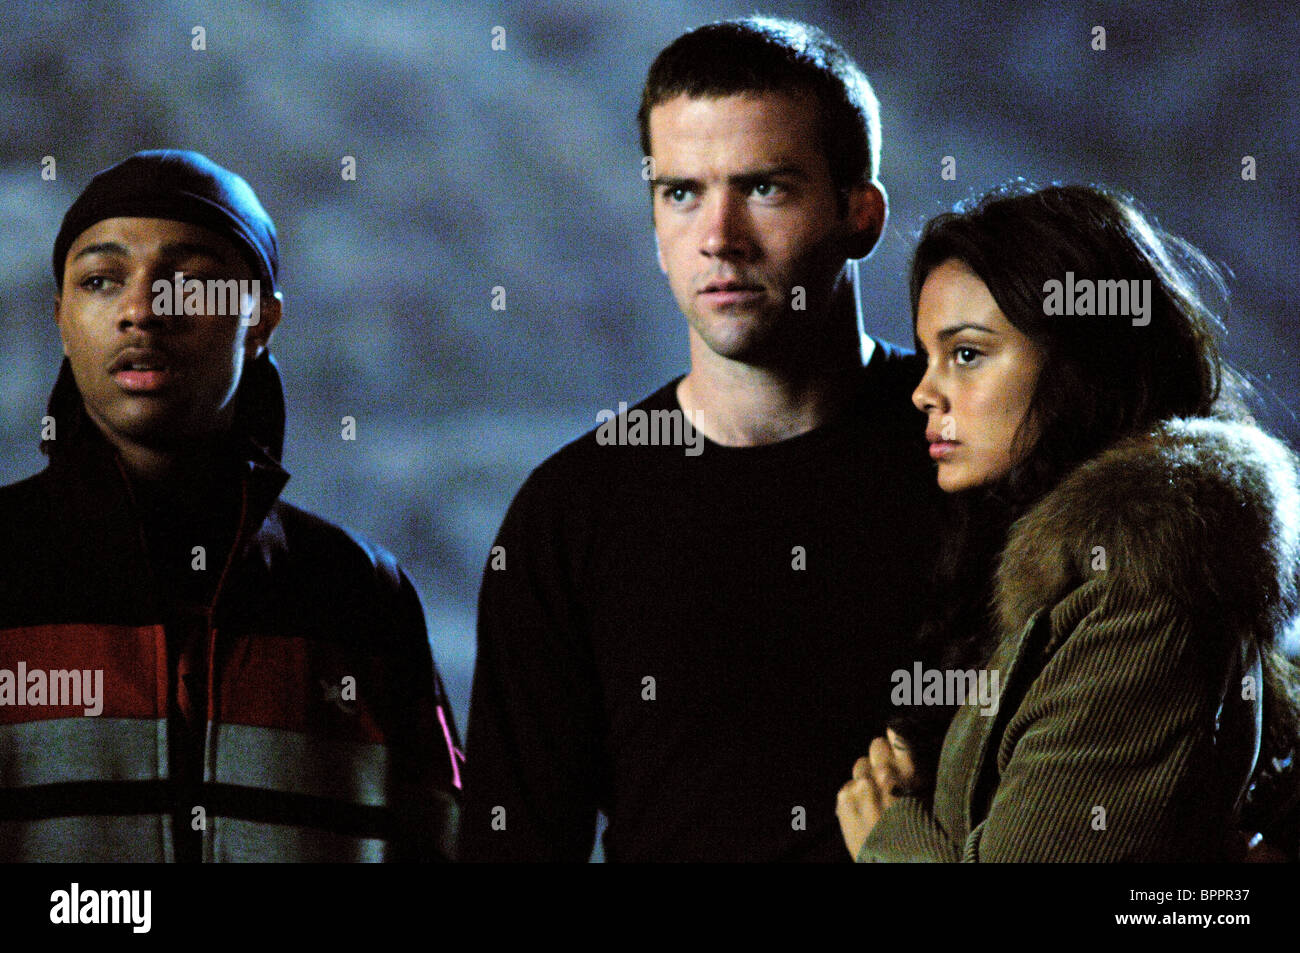 Fast And Furious 3 Full Movie >> Bow Wow Lucas Black Nathalie Kelley The Fast And The Furious 3